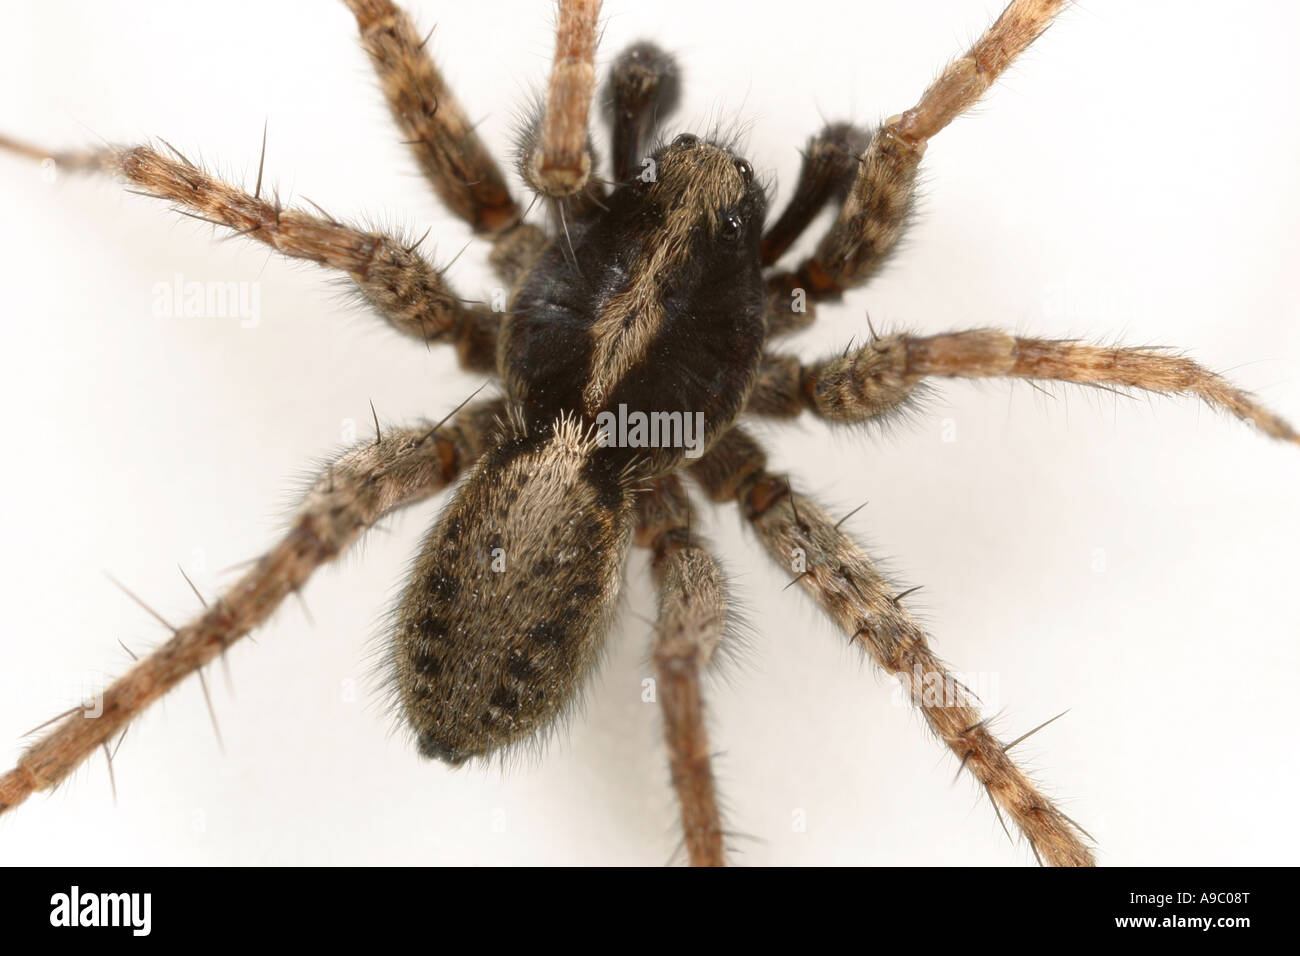 Male Pardosa agricola, a Wolf spider, family Lycosidae, on white background - Stock Image